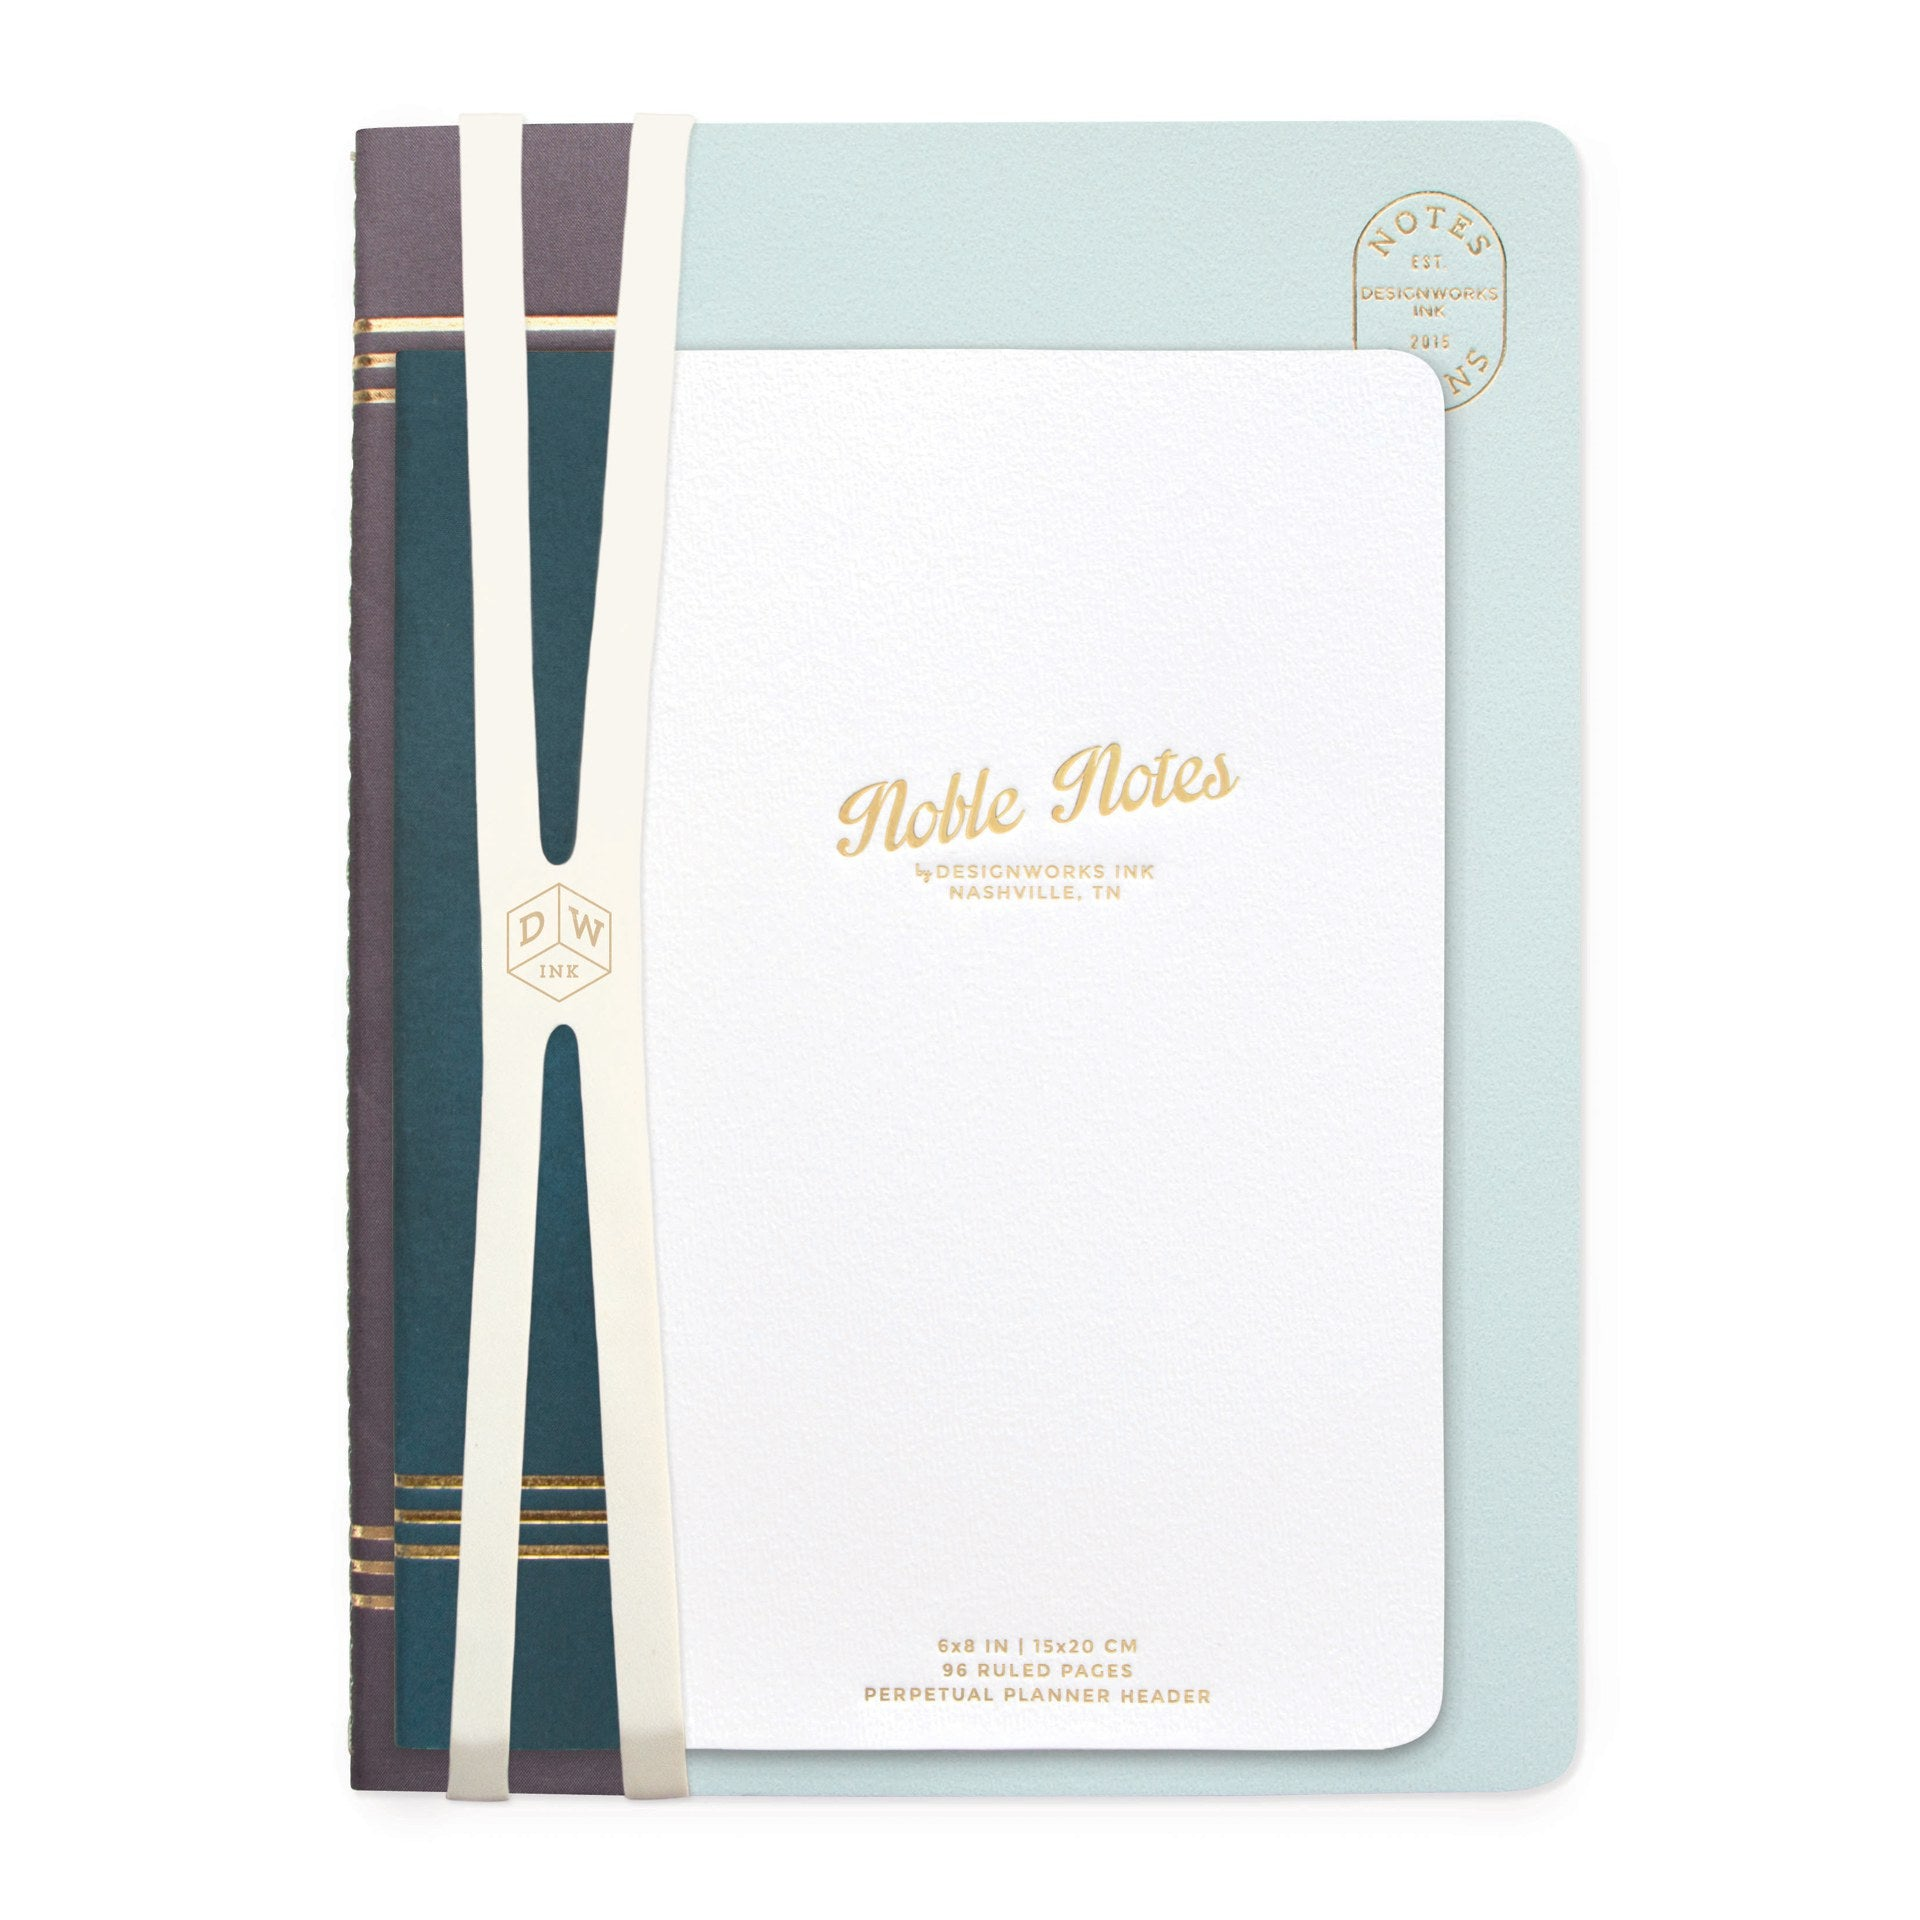 Duo Noble Notes Notebooks